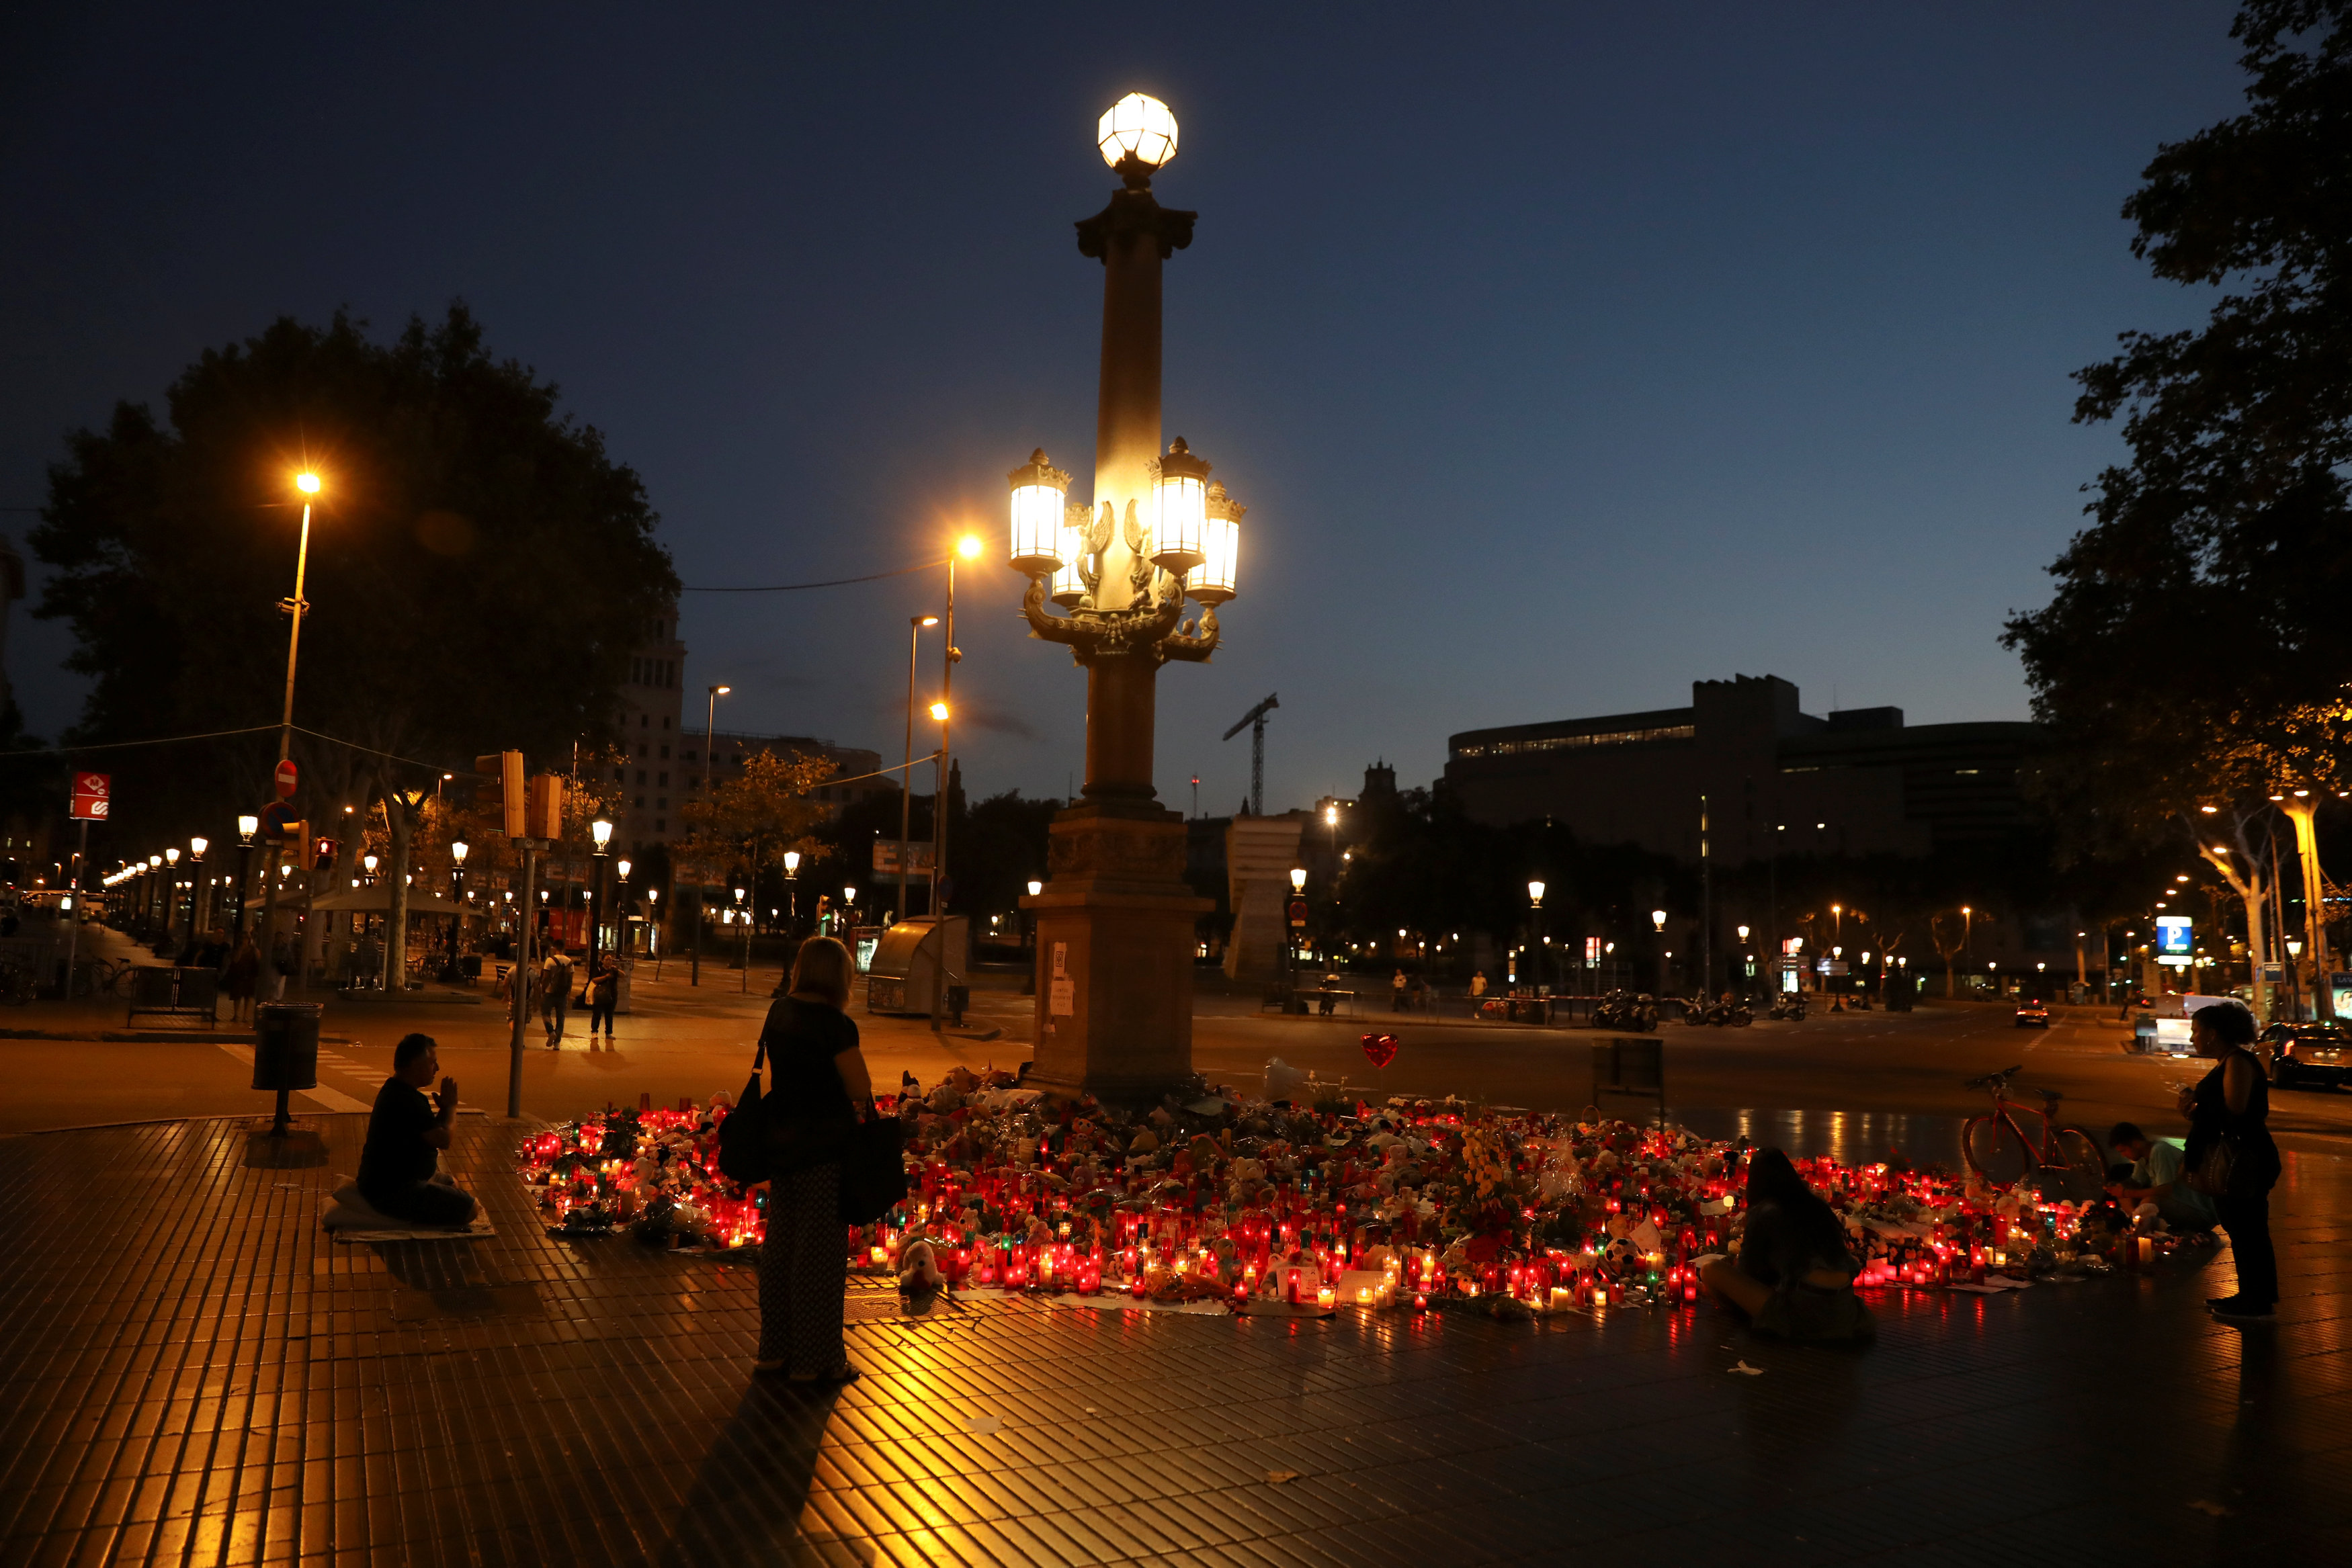 People gather at an impromptu memorial where a van crashed into pedestrians at Las Ramblas in Barcelona, Spain on August 21, 2017. (REUTERS/Susana Vera)